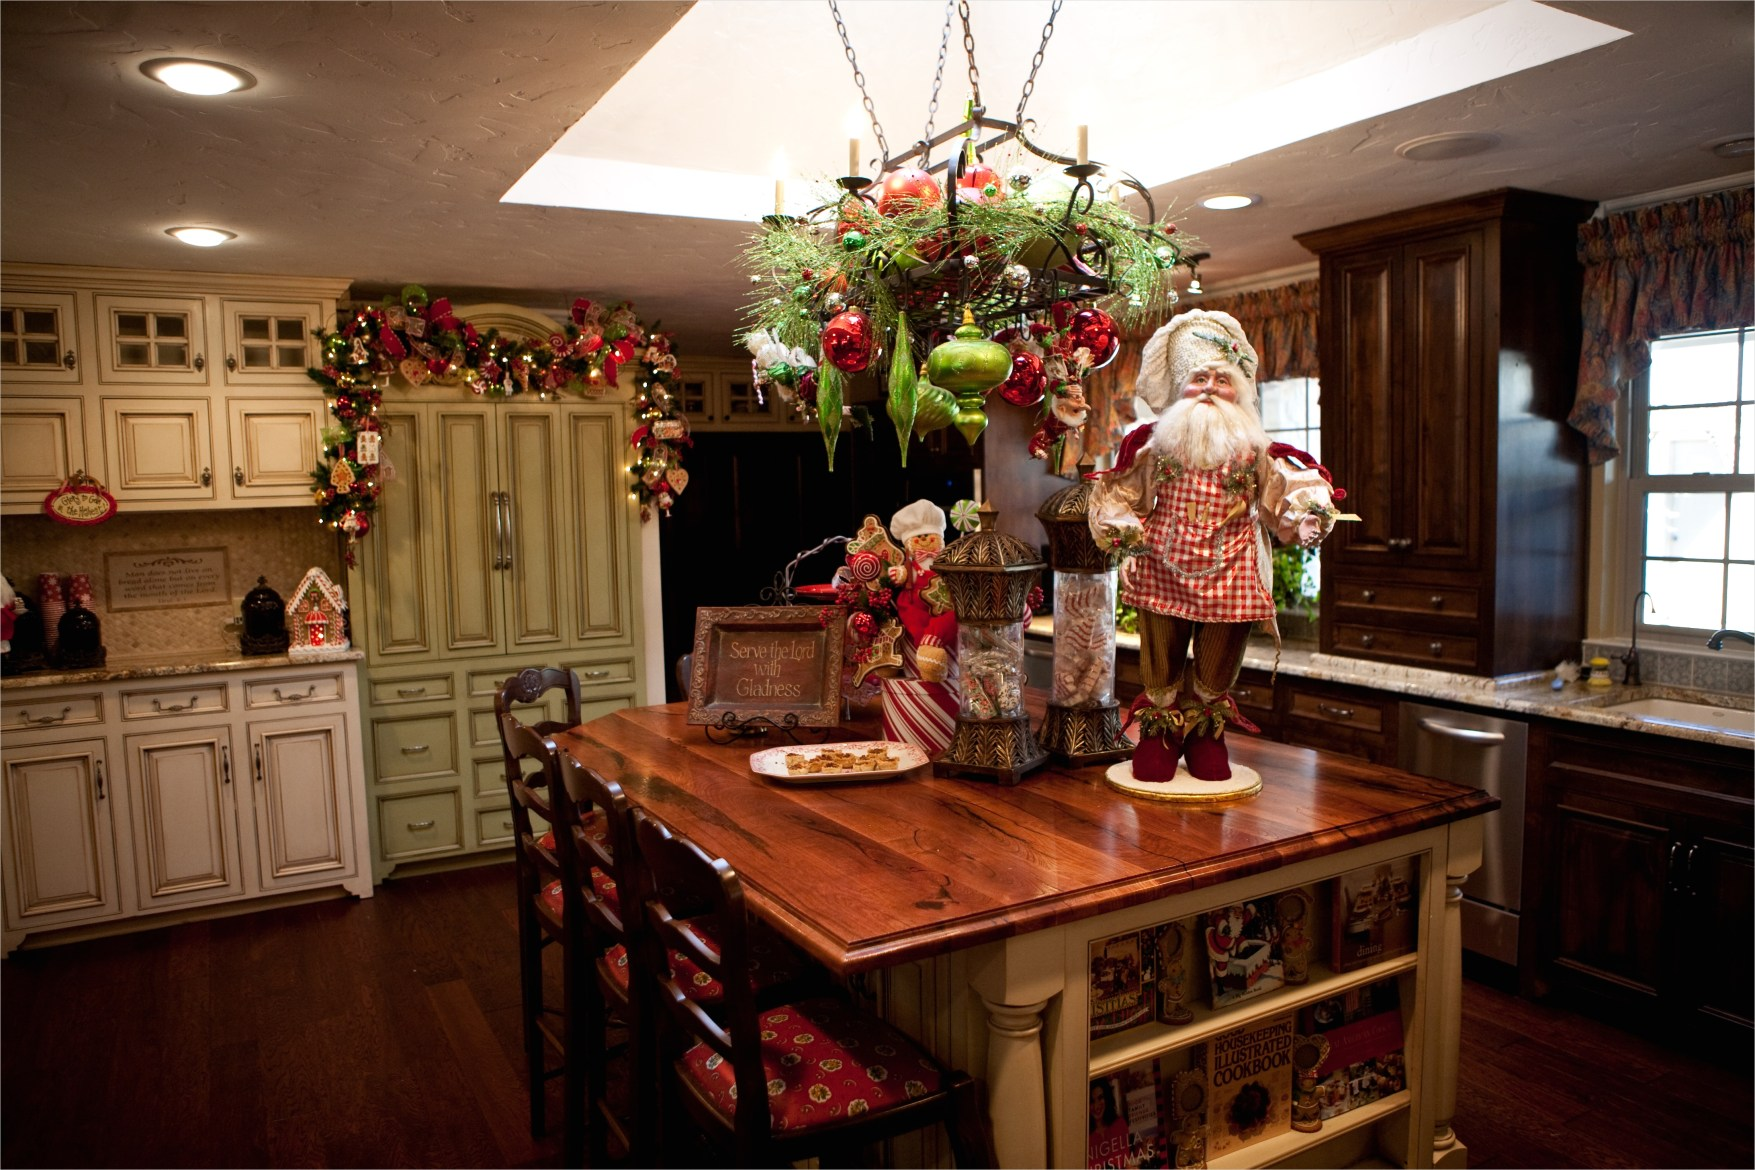 42 Awesome Kitchen Christmas Decorating Ideas 39 Christmas Tree Ideas 6